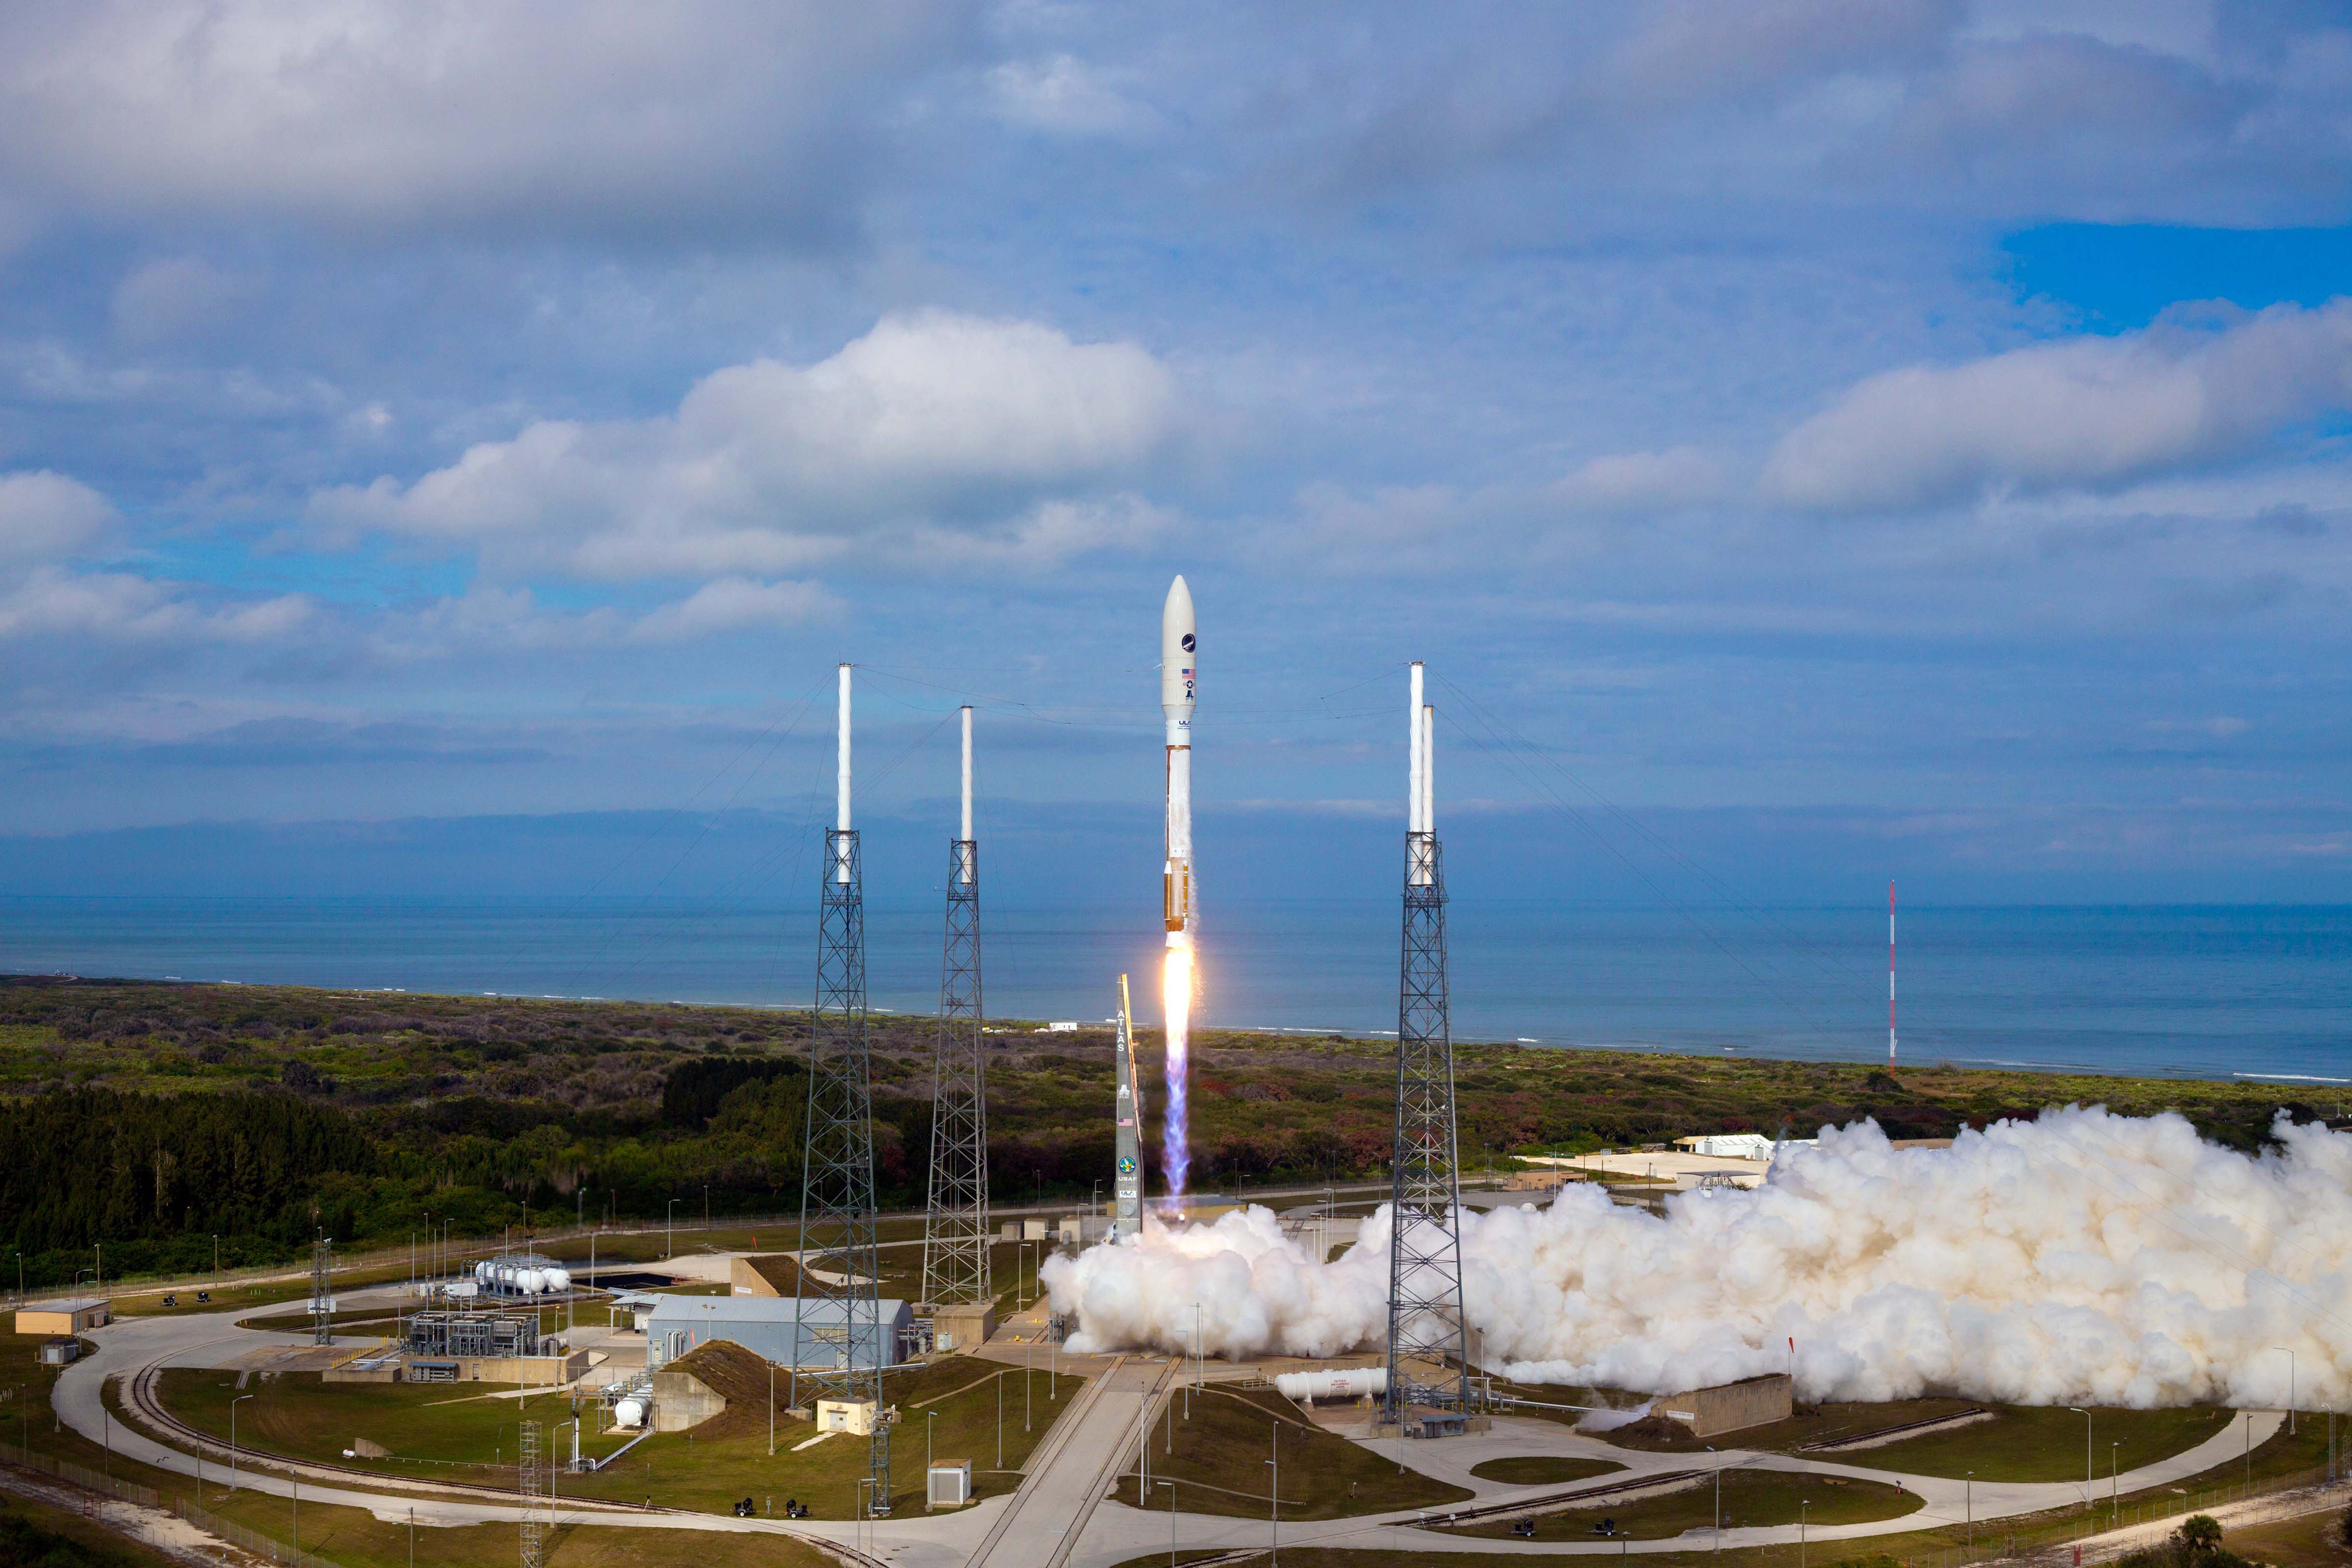 Launch of Atlas V OTV3 from Cape Canaveral AFS, FL. December 11,